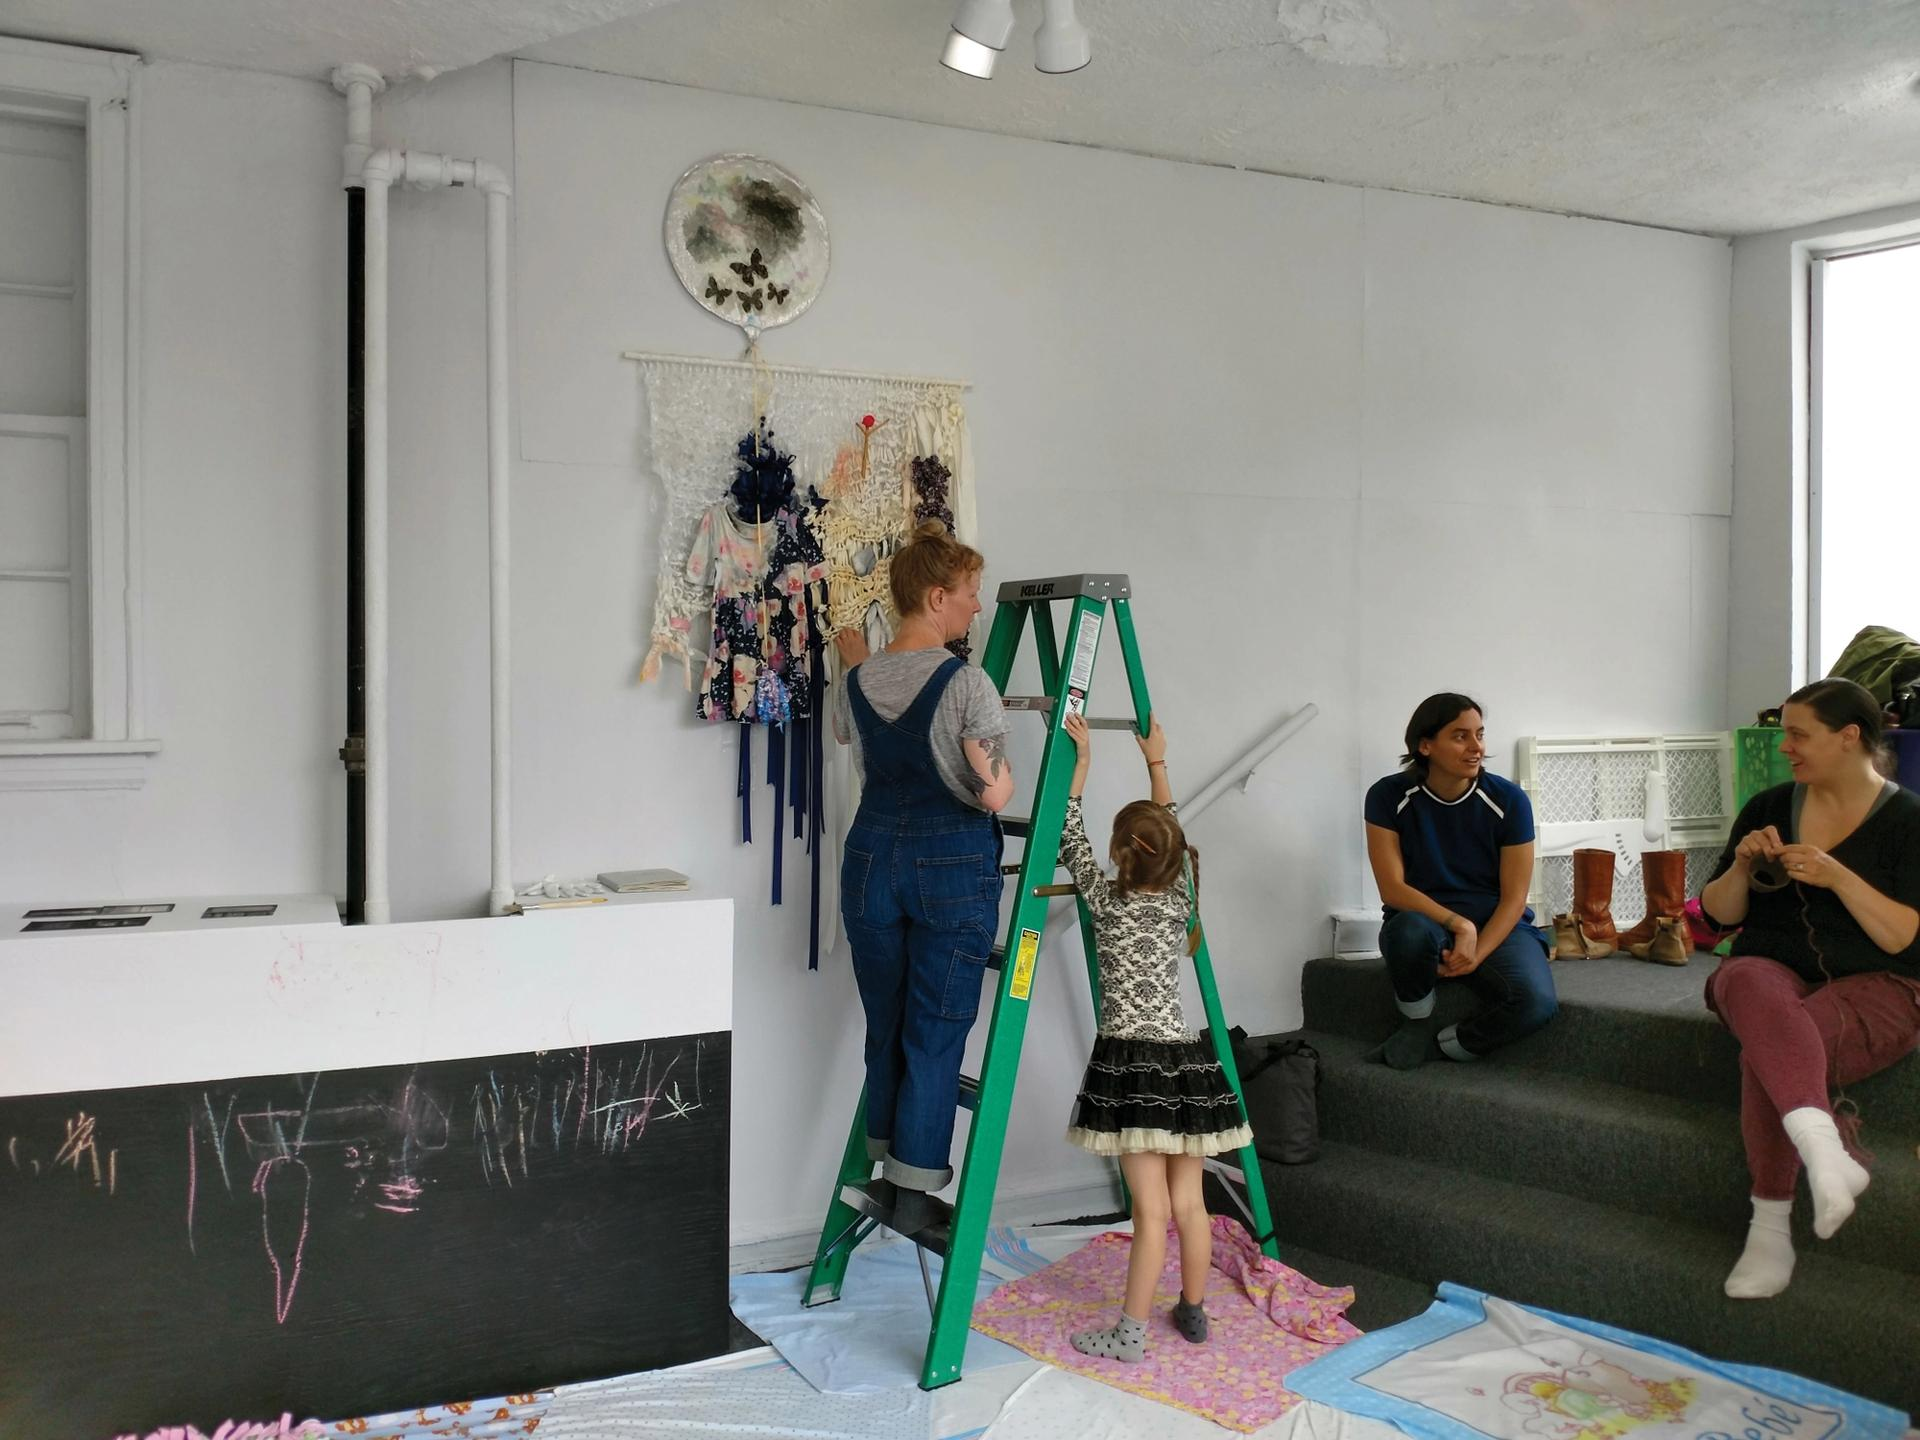 For the show Firsts and Starts: Art-Making as a New Mother at Roman Susan Art Foundation, Extended Practice hosted artist mother meet-ups and children were always welcome